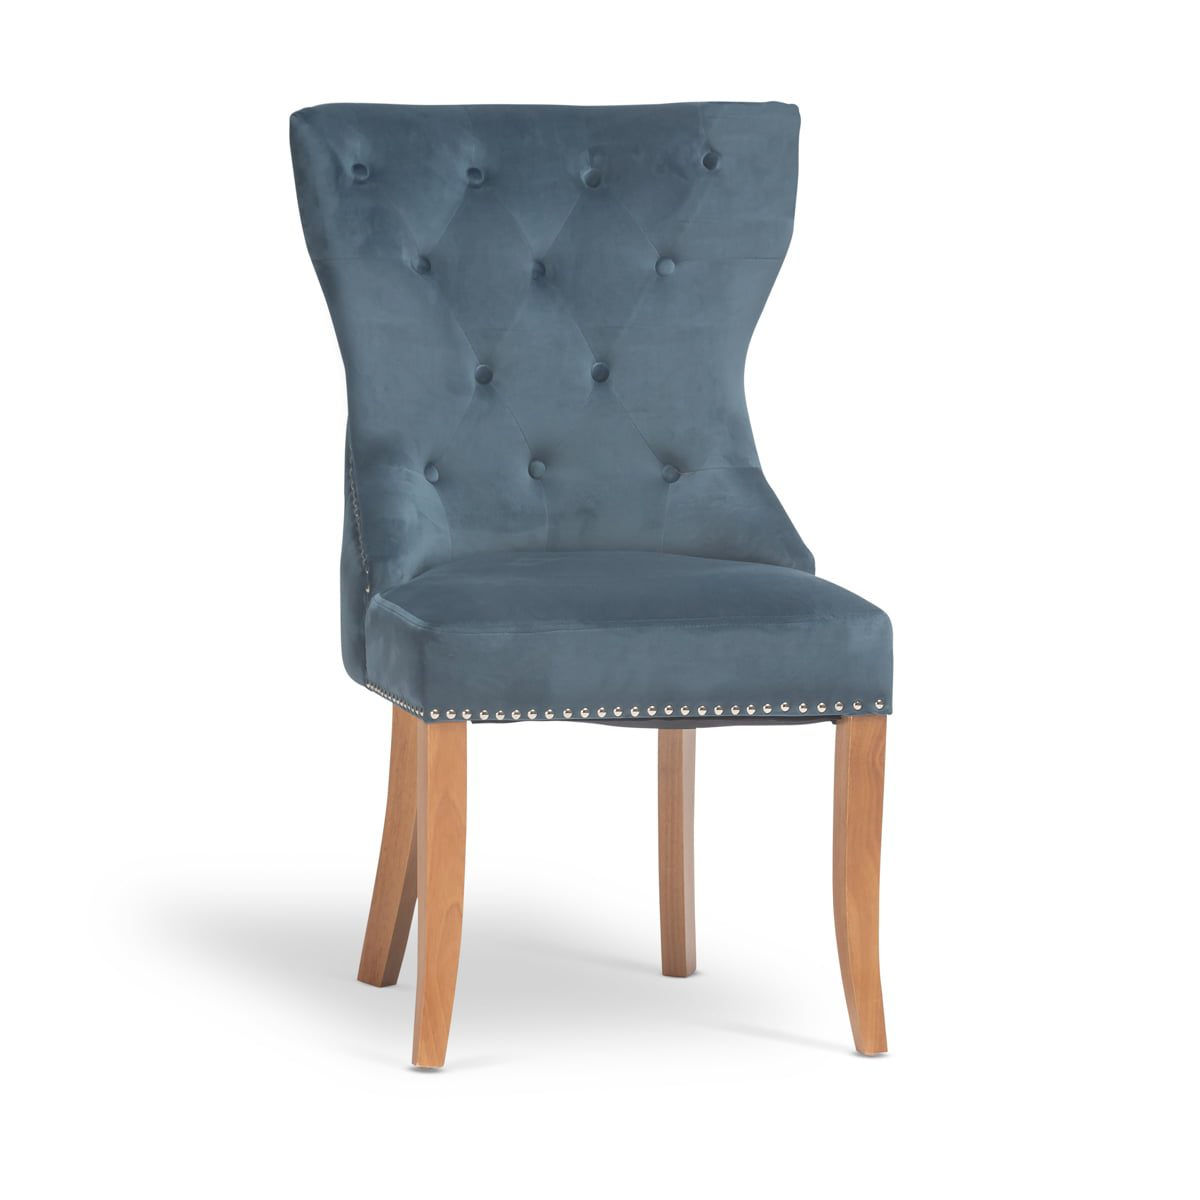 Tufted Plush Dining Chair